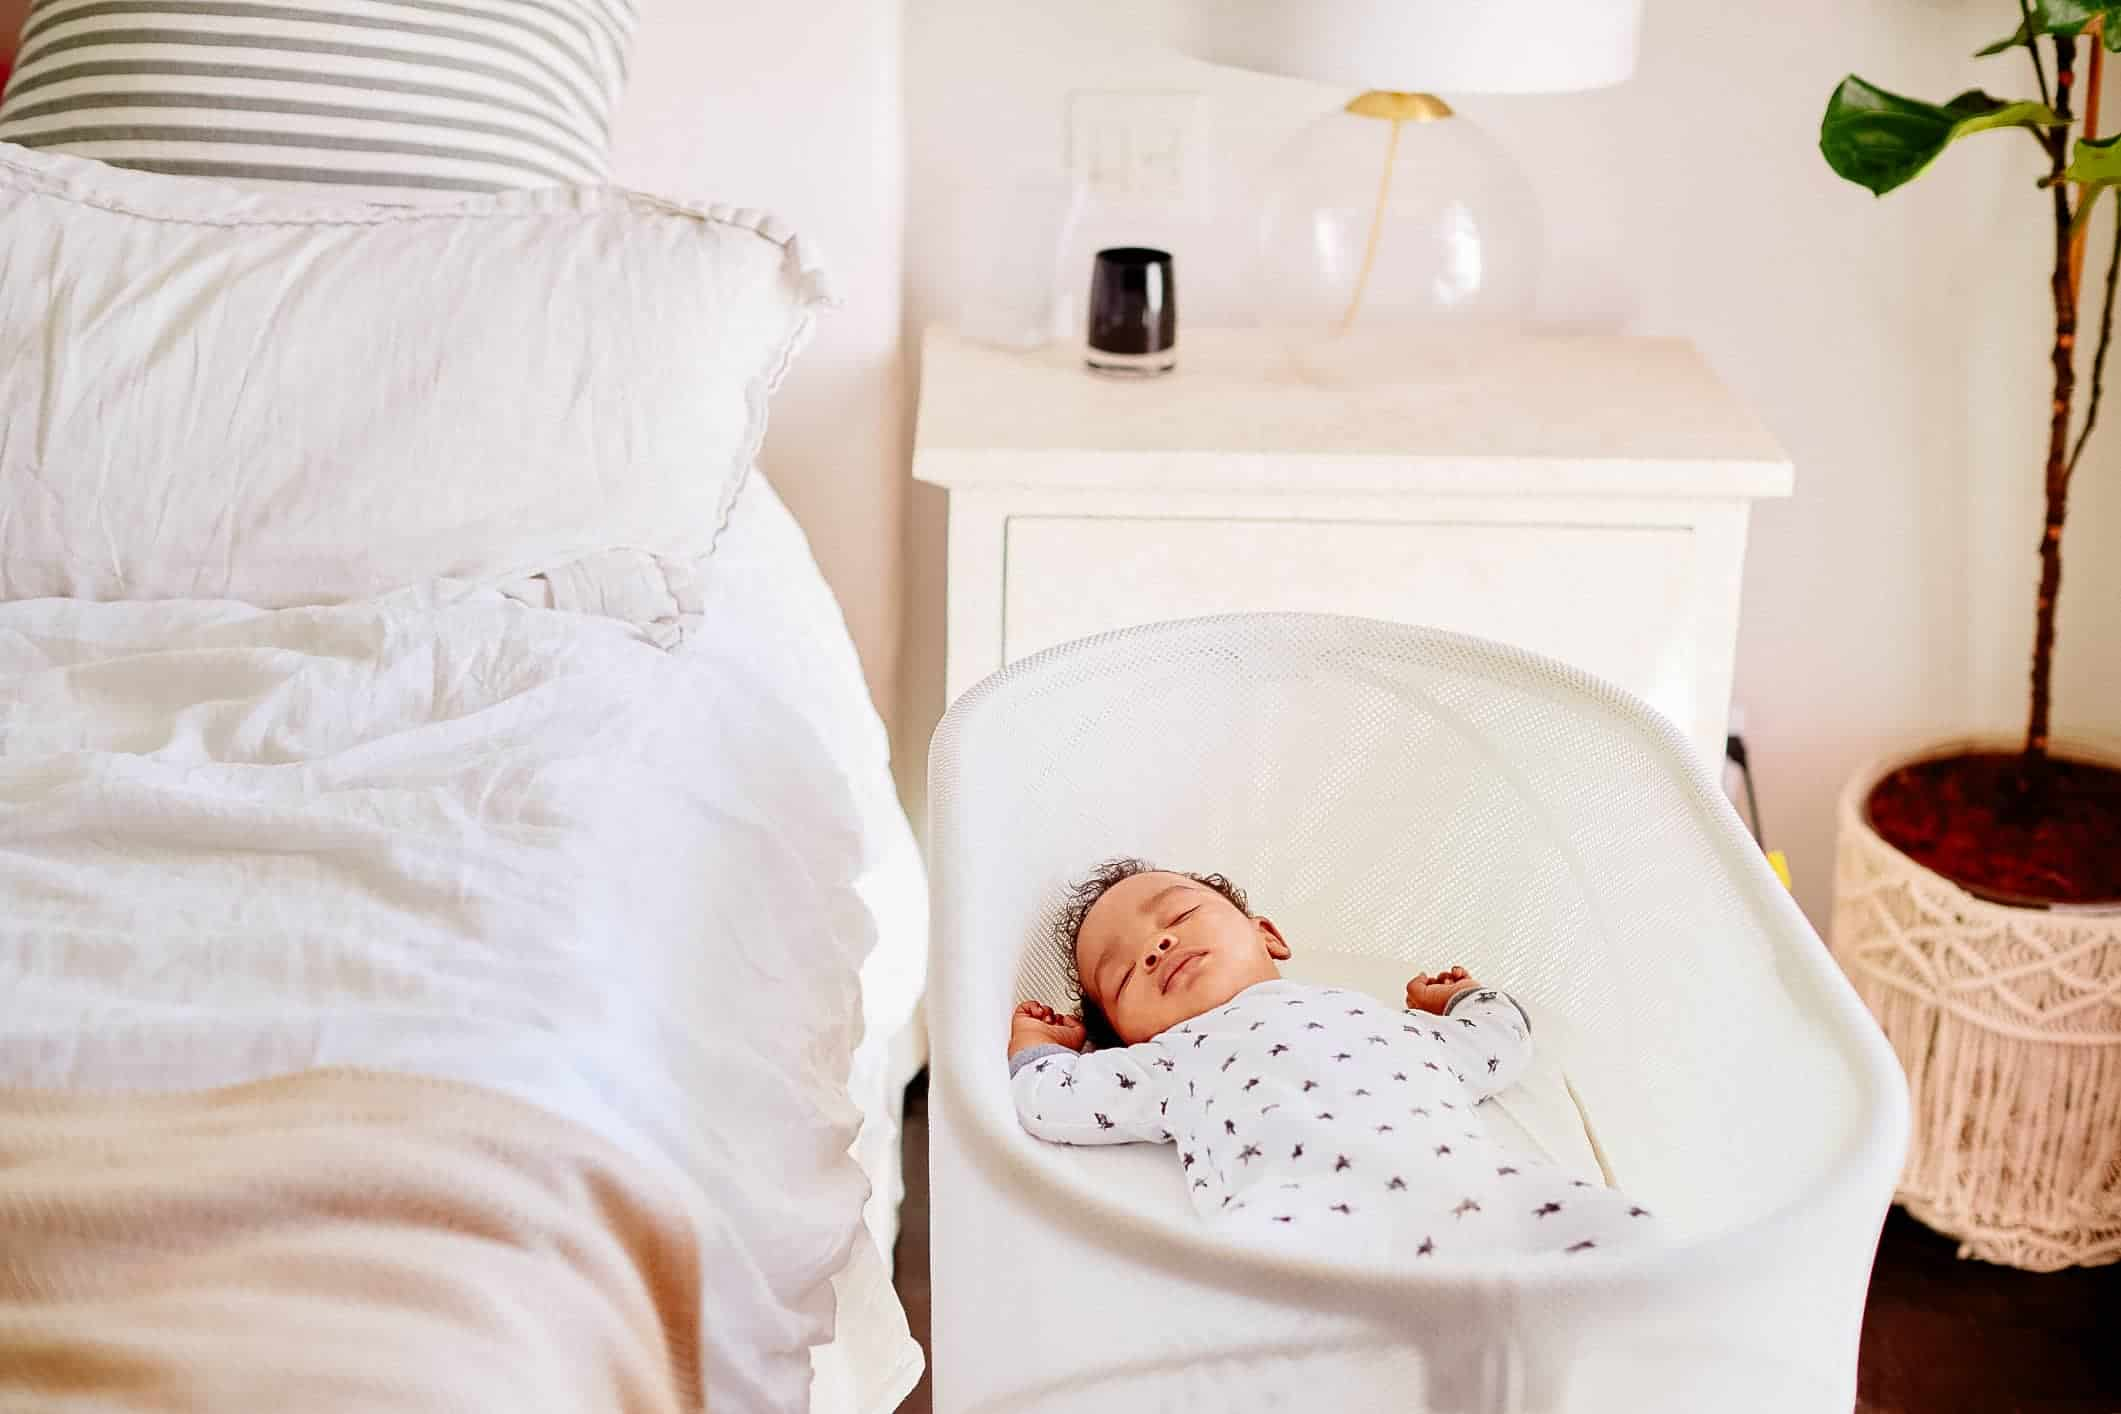 Newborn Bassinet Best Non Toxic Bassinets Choosing A Healthier Sleeping Space For